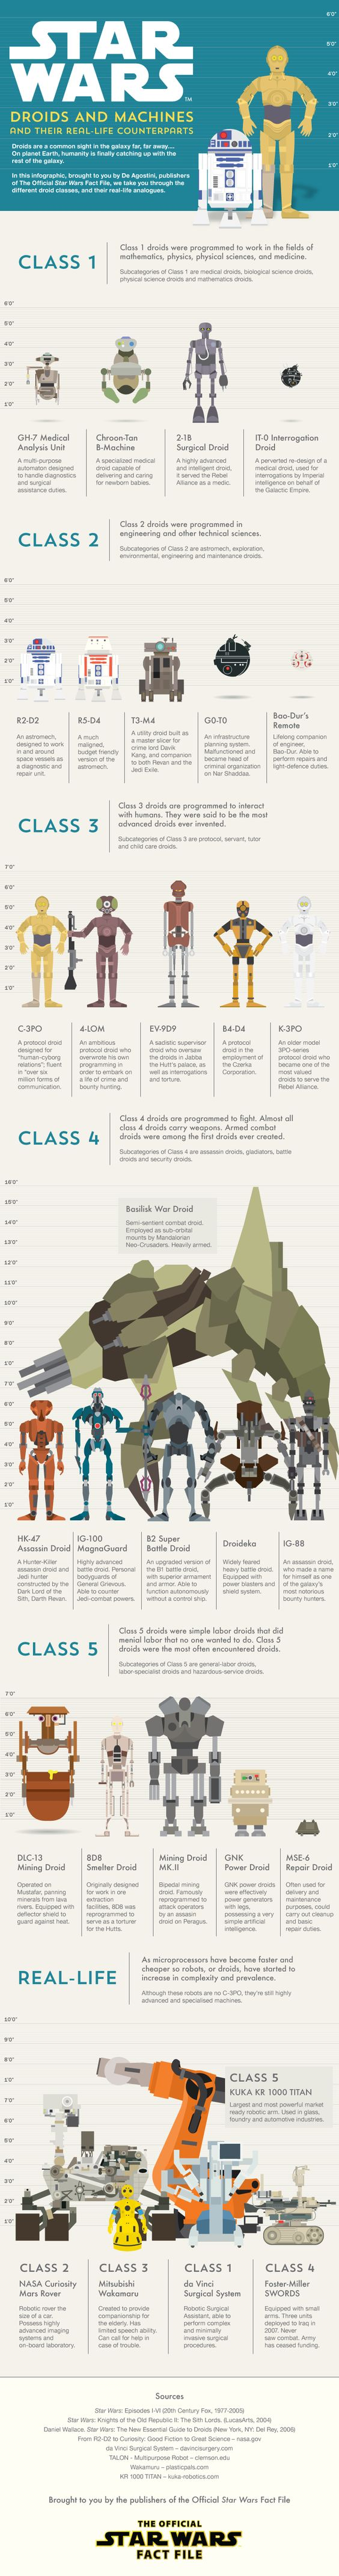 Star Wars Droids and Machines Infograph. http://guides.starwarsfactfile.co.uk/droids-and-machines/Droids.png